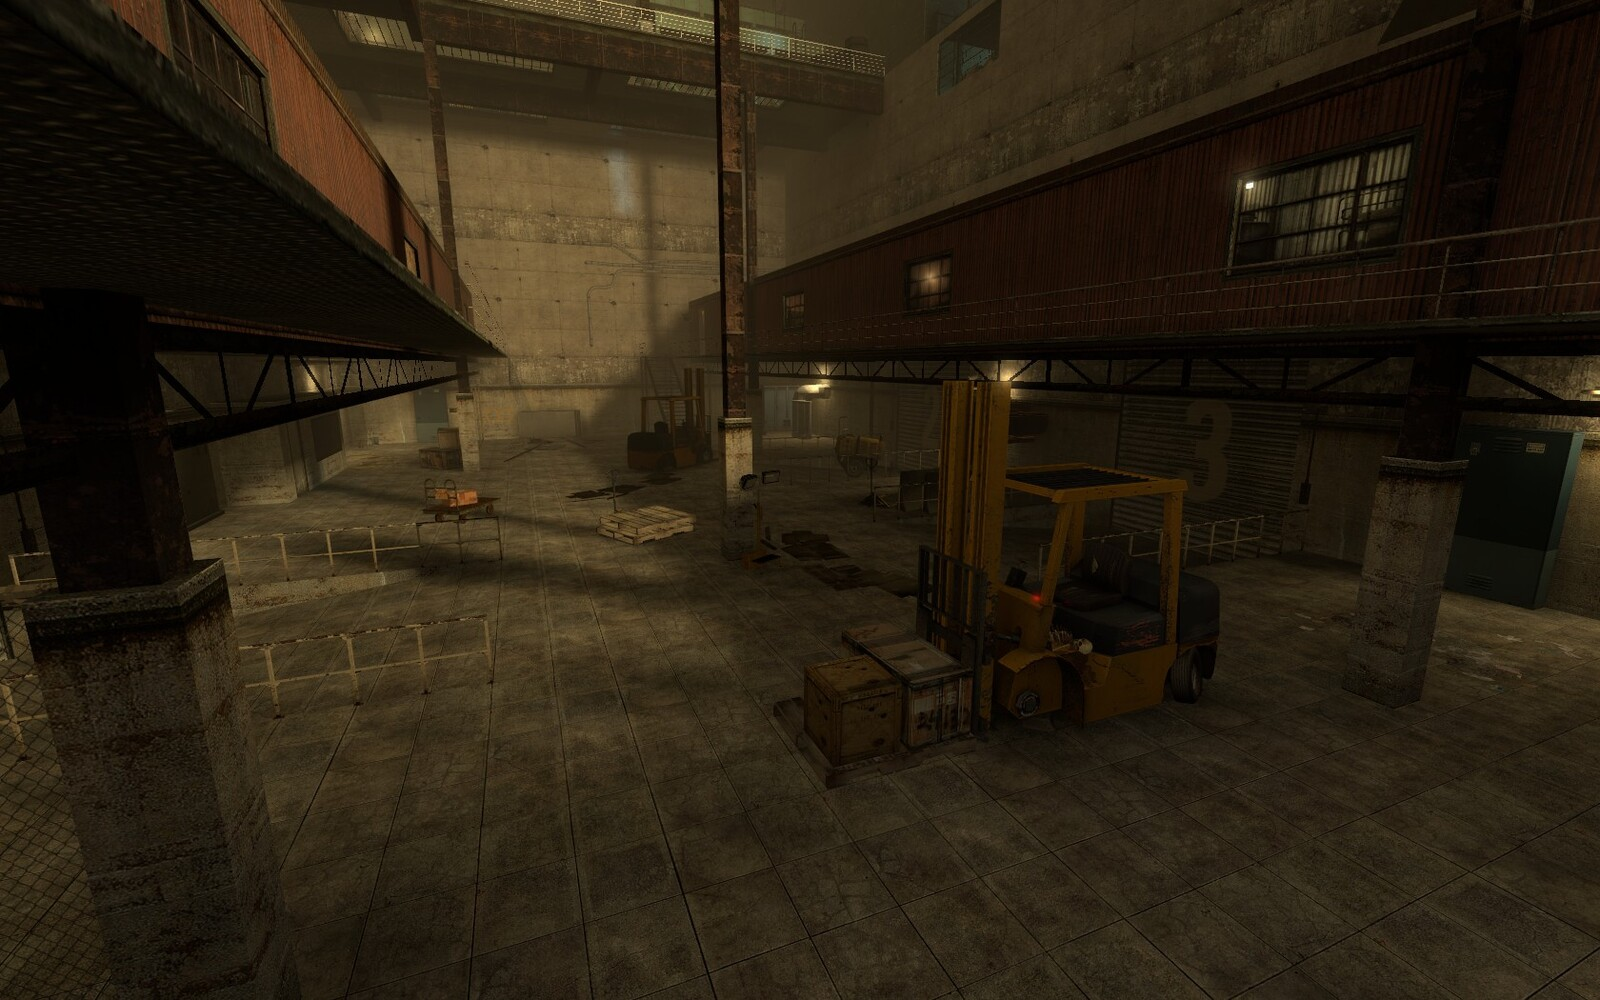 Verticality was a key feature in the level and way used in an engaging way to make the level fun to traverse.